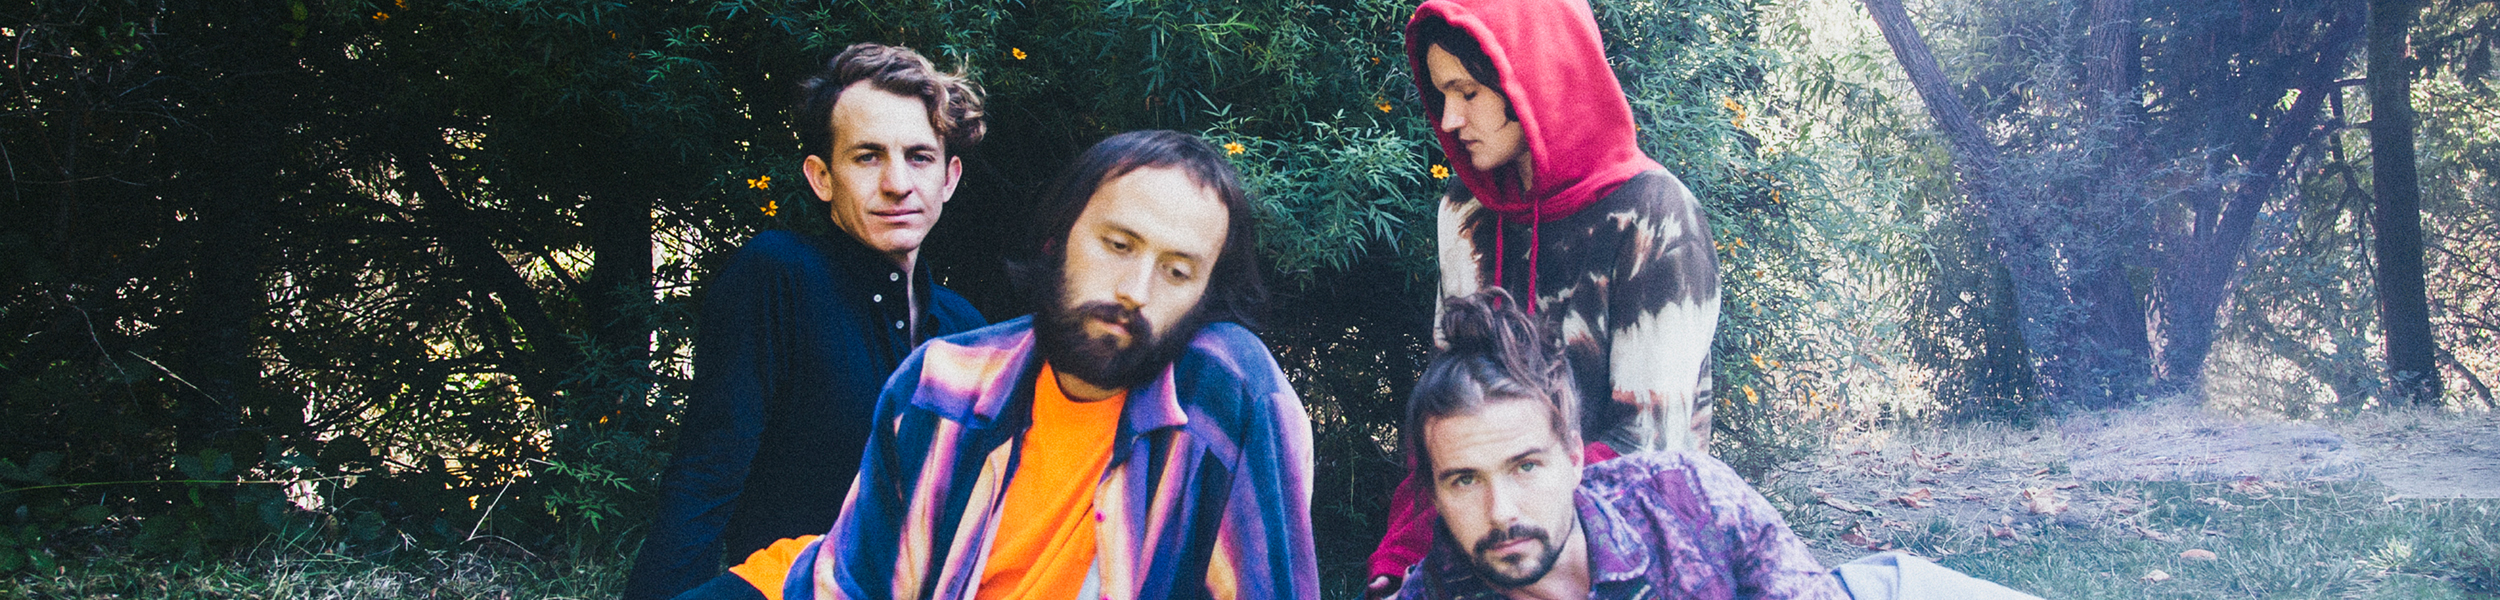 Big Thief - Share Live Video Of 'Orange' And Announce Biggest UK Headline Show